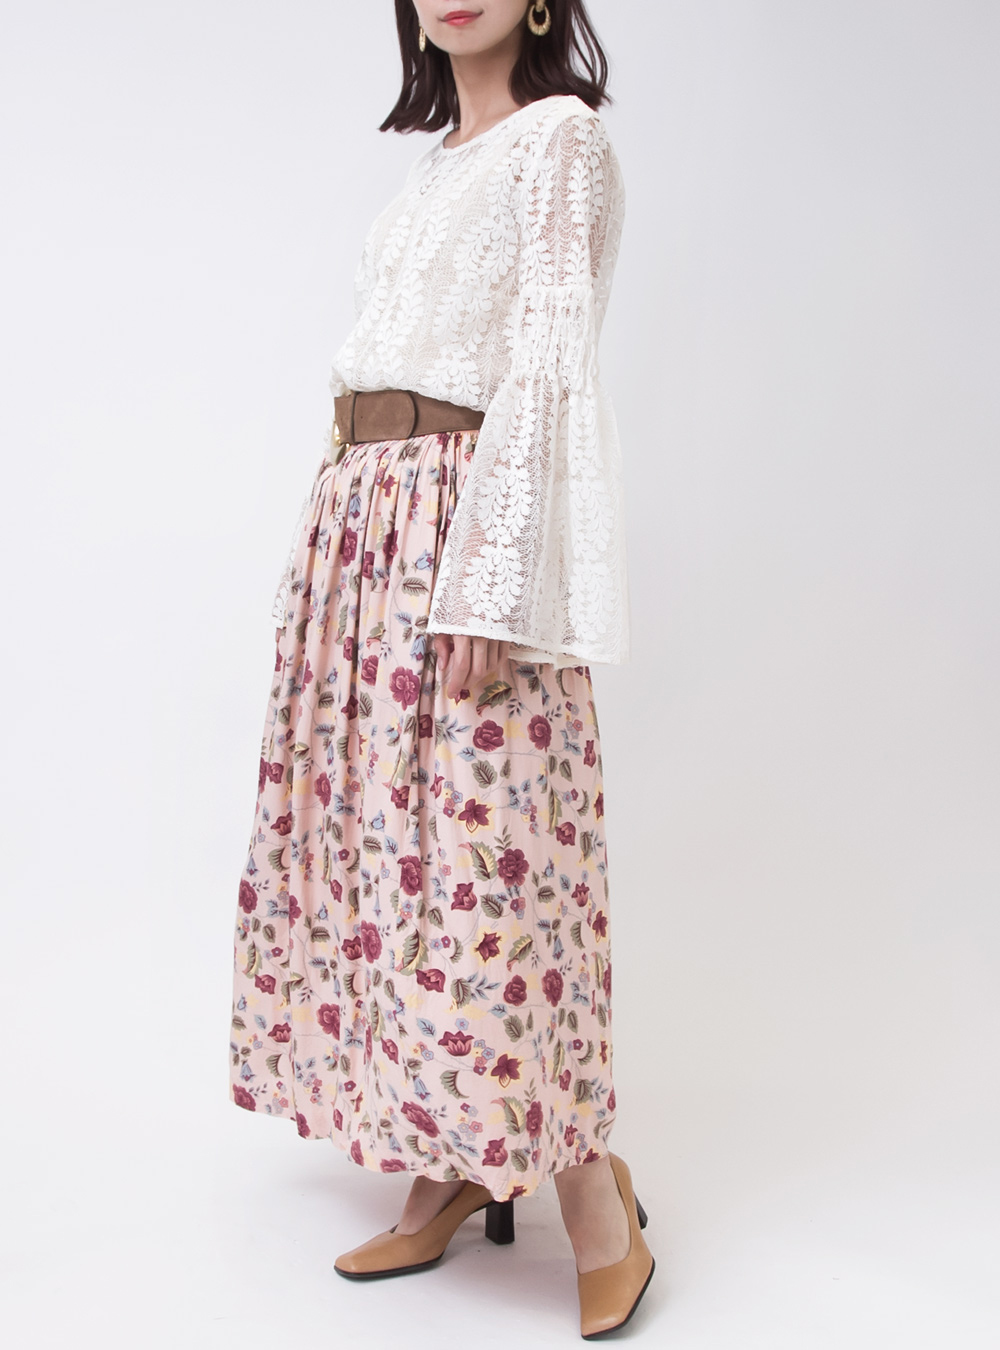 Art Flower Design Pink Skirt